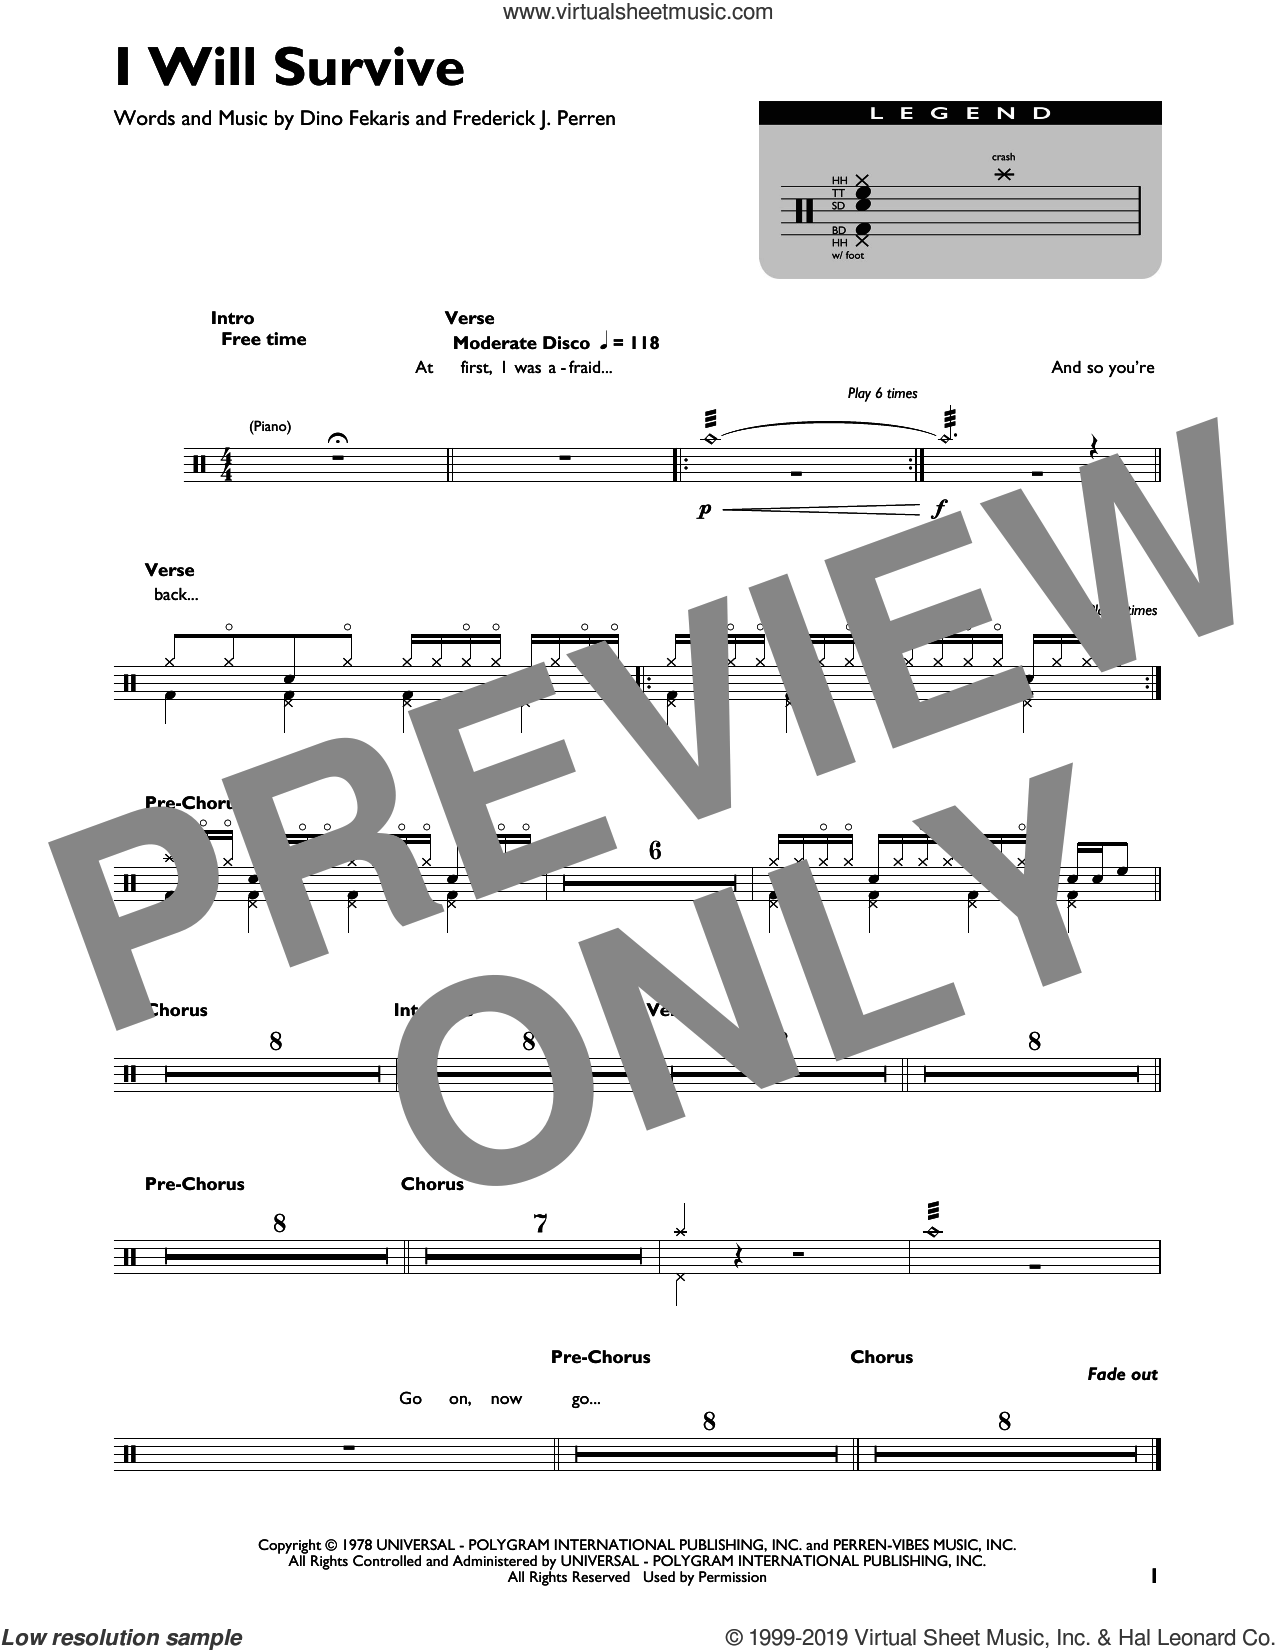 I Will Survive sheet music for drums by Gloria Gaynor, Dino Fekaris and Frederick Perren, intermediate skill level